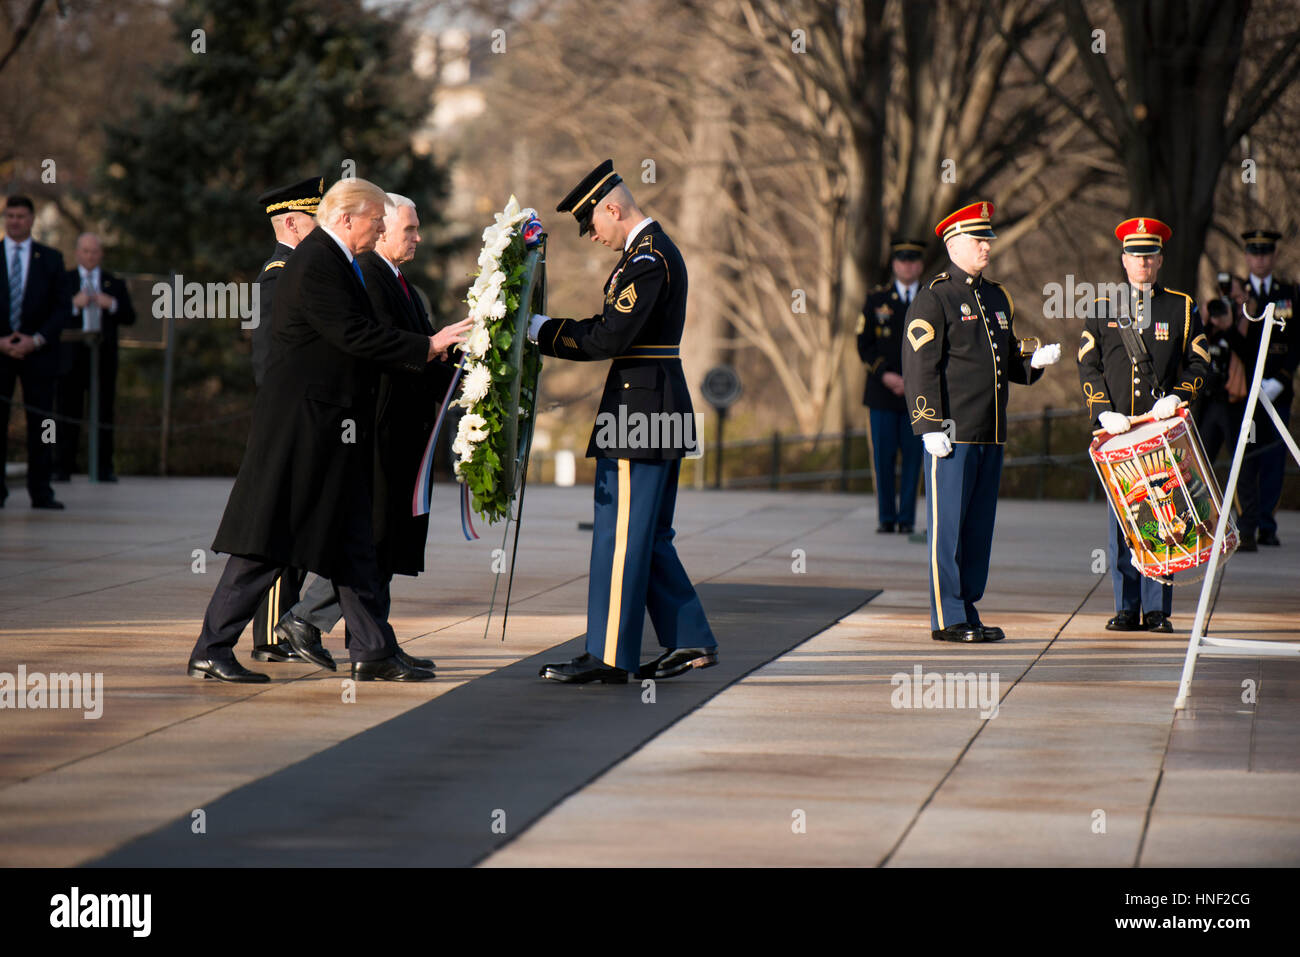 U.S. President-elect Donald Trump and Vice President-elect Mike Pence place a wreath at the Arlington National Cemetery - Stock Image